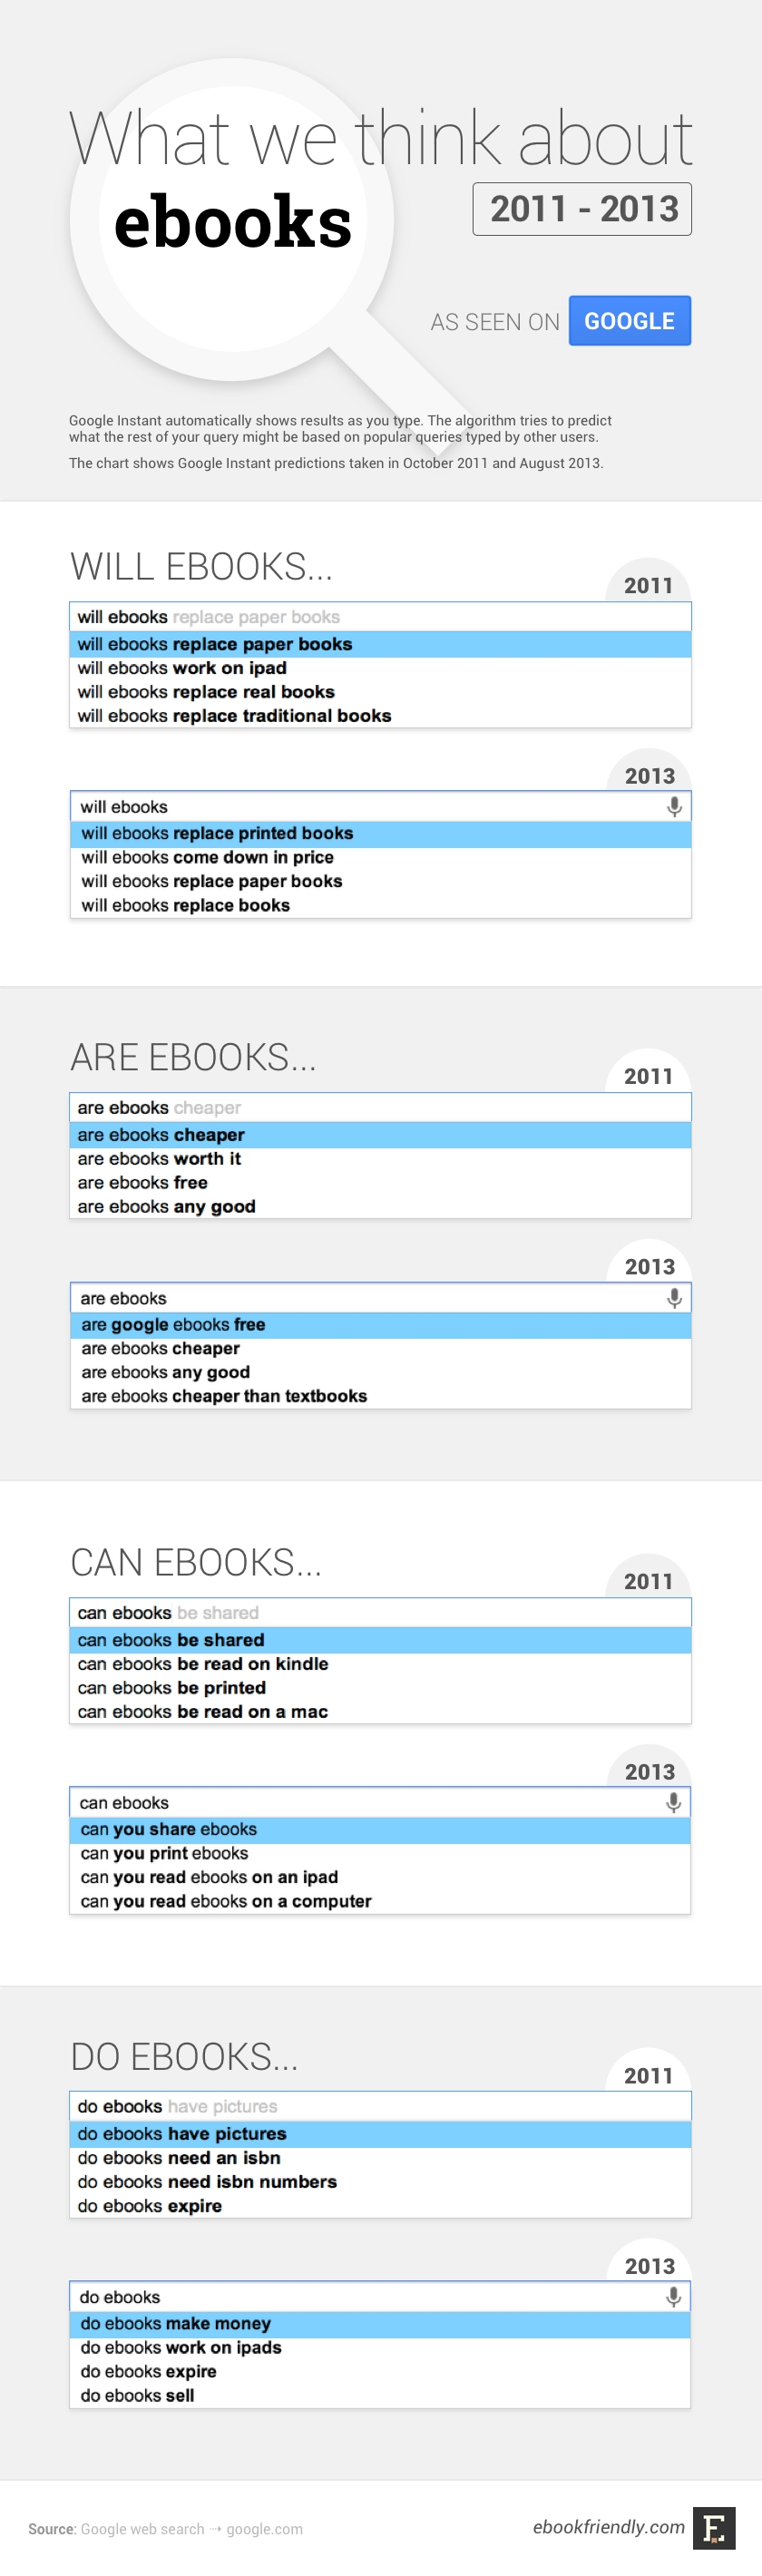 What we think about ebooks 2011 vs 2013 #infographic